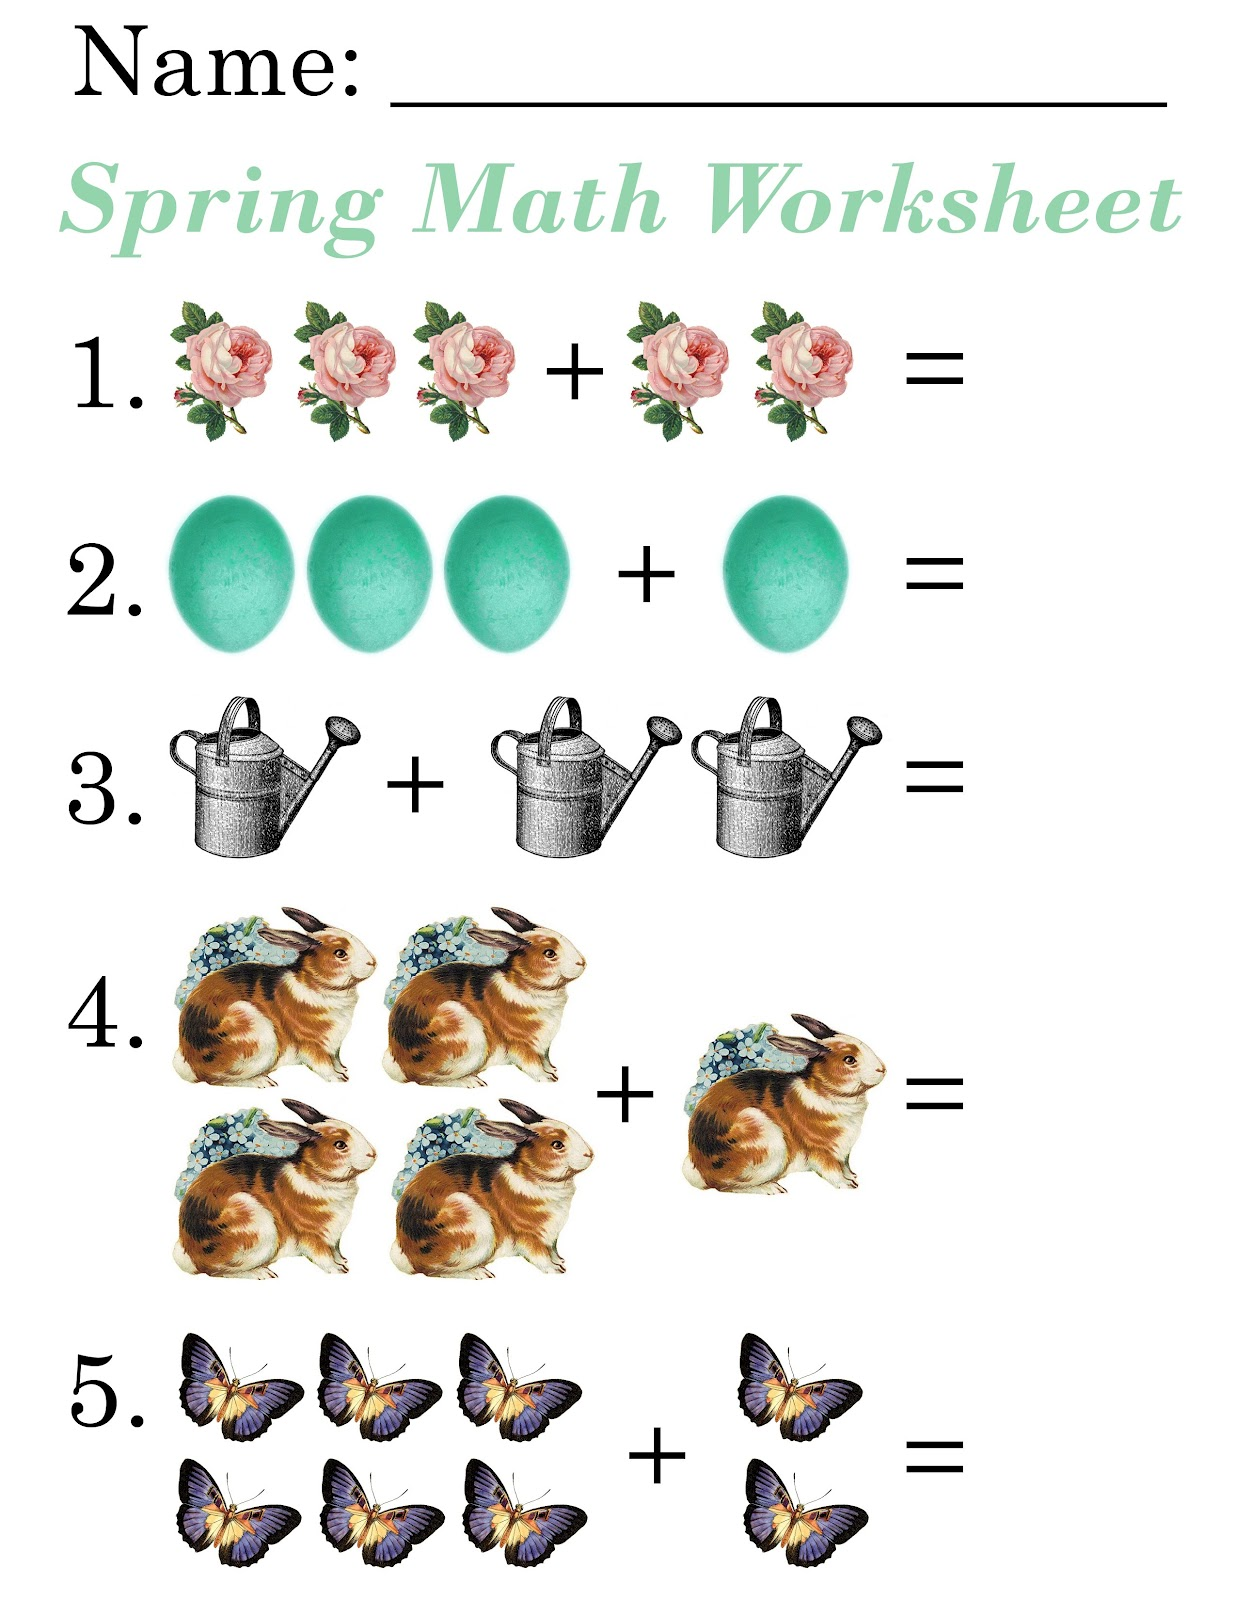 Free Fun Math Worksheets – Free Math Worksheets 4 Kids